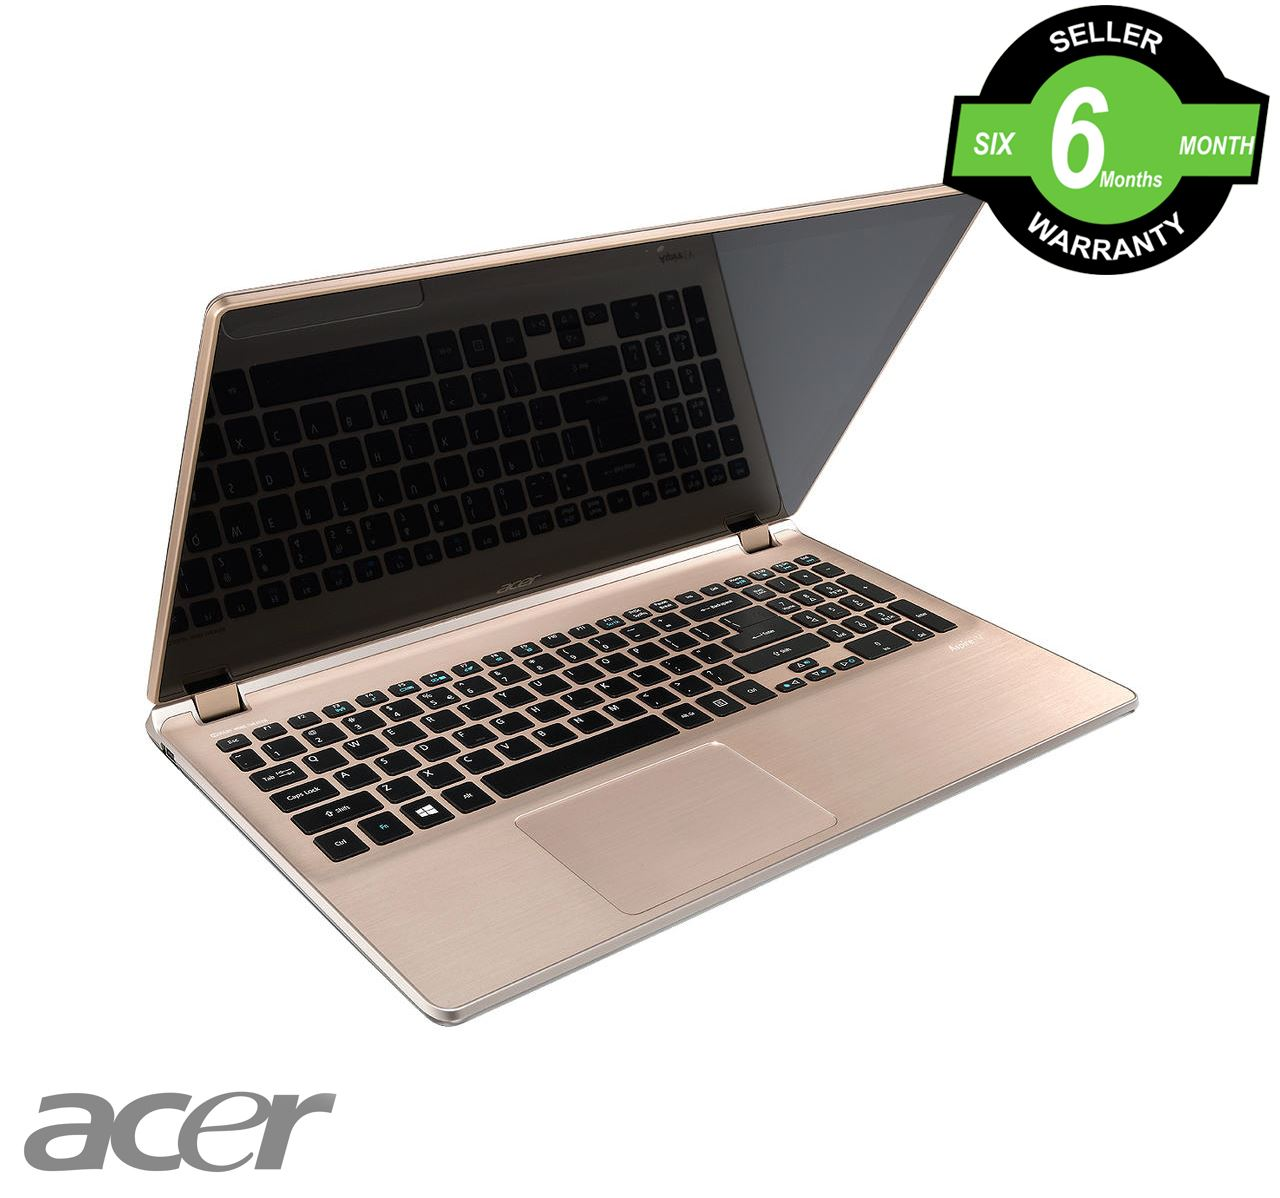 acer aspire v5 573pg laptop core i7 12gb ram 500gb hdd win 10 touch screen 15 6 ebay. Black Bedroom Furniture Sets. Home Design Ideas